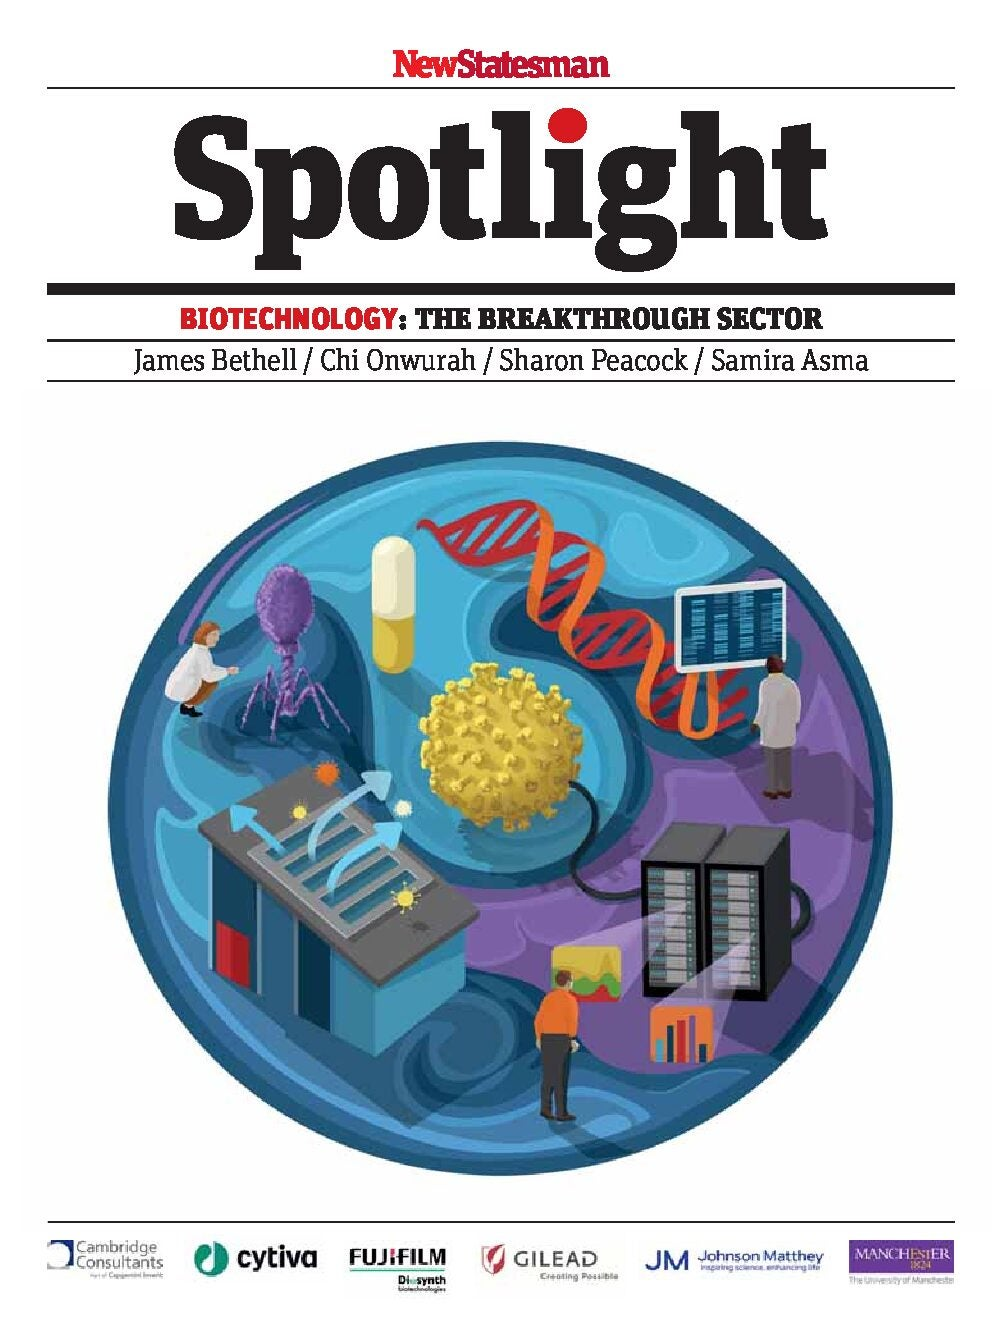 Biotechnology: The breakthrough sector